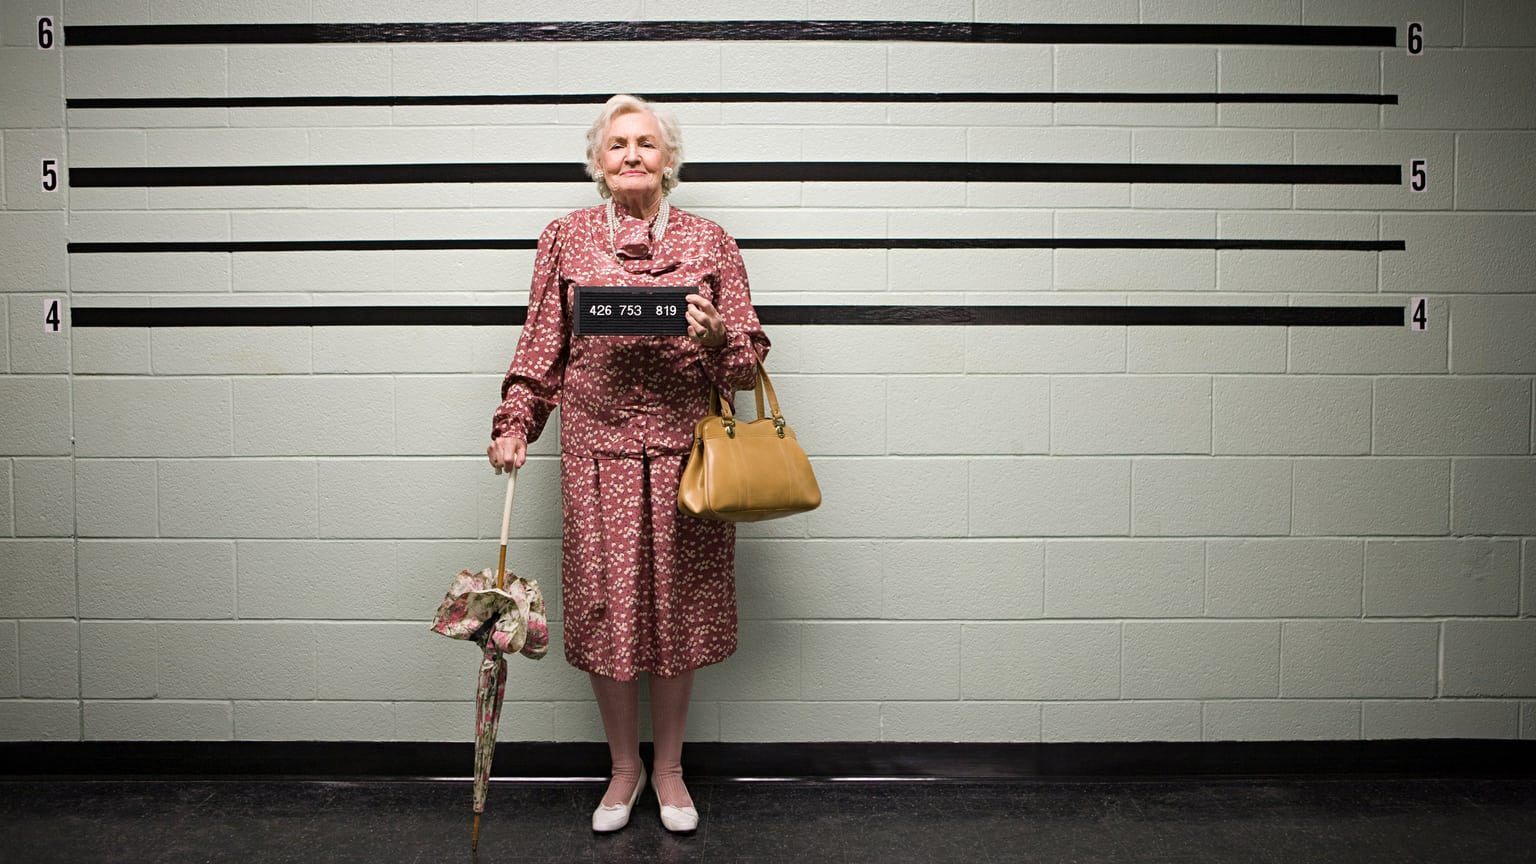 Elderly woman getting a mugshot taken